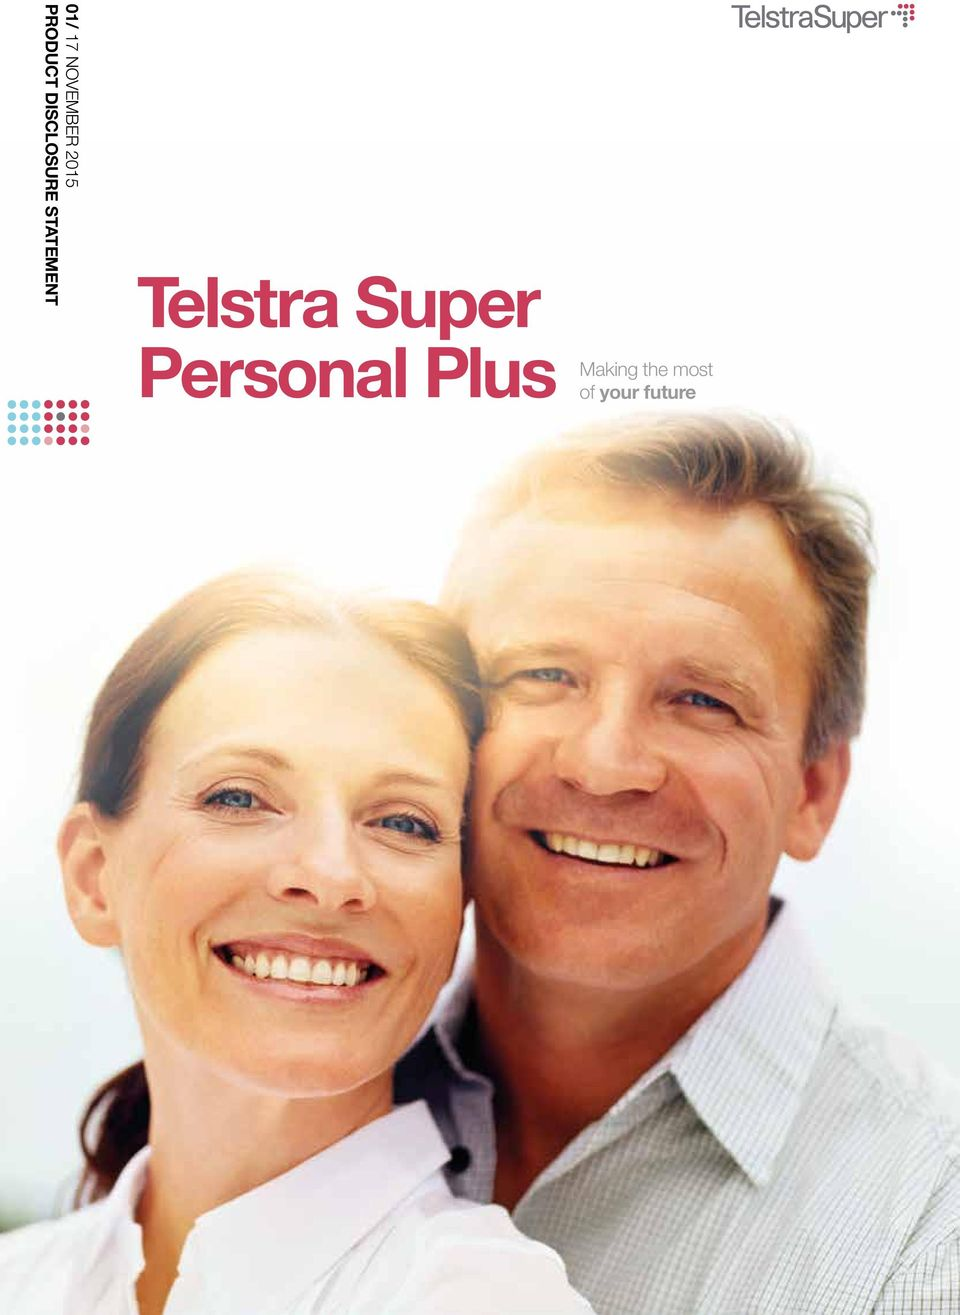 STATEMENT Telstra Super